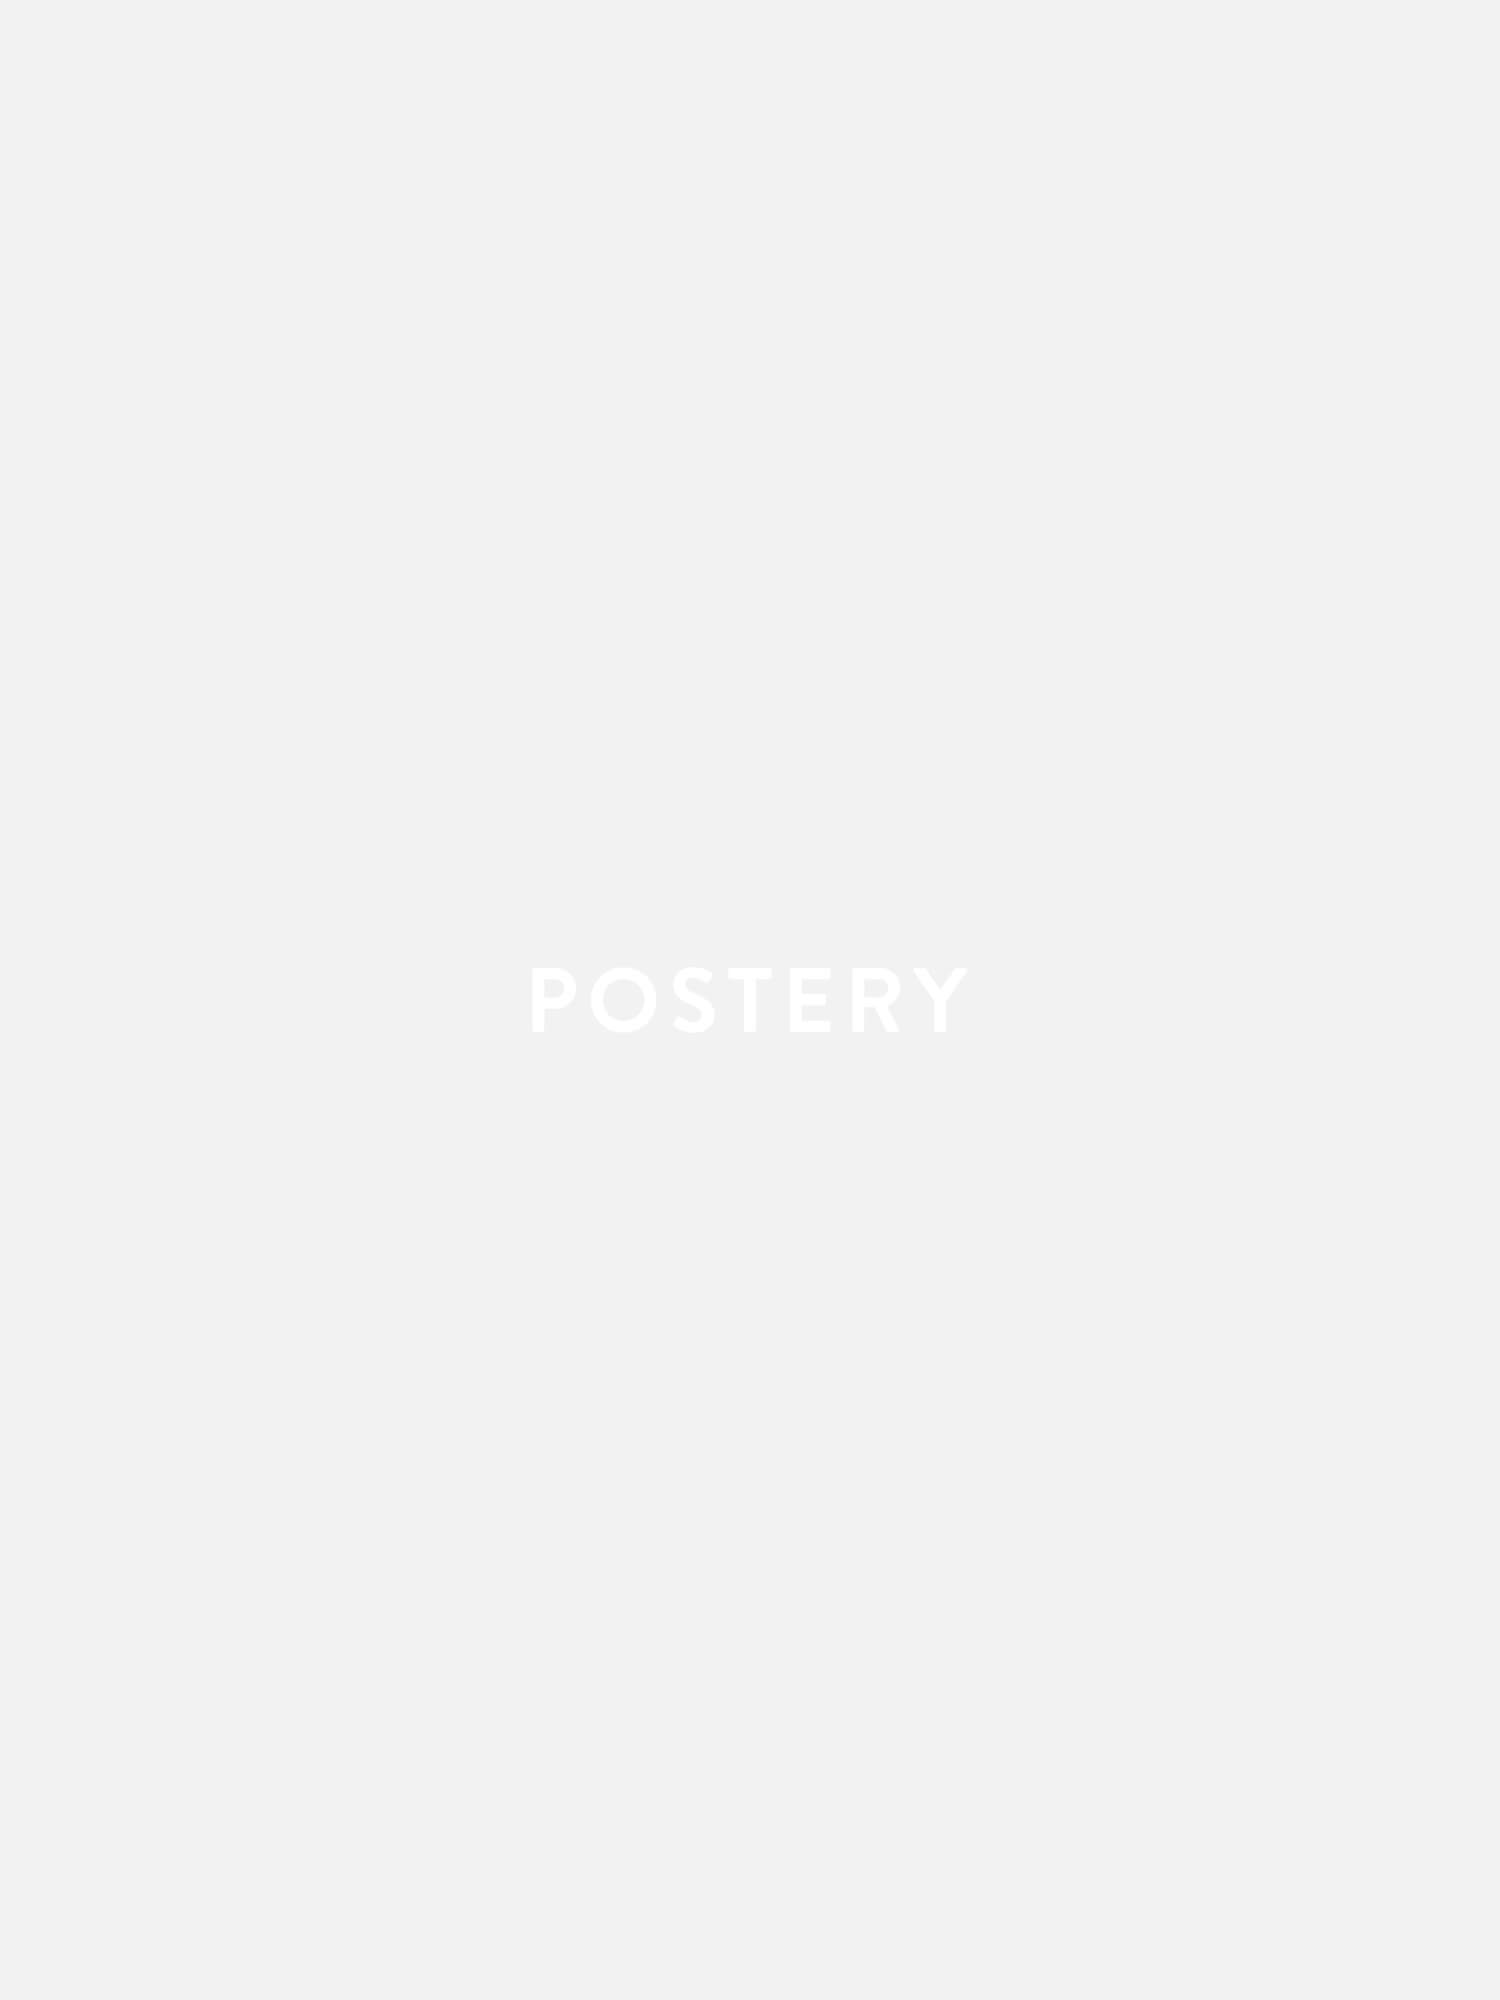 Vogue Beach Issue Poster